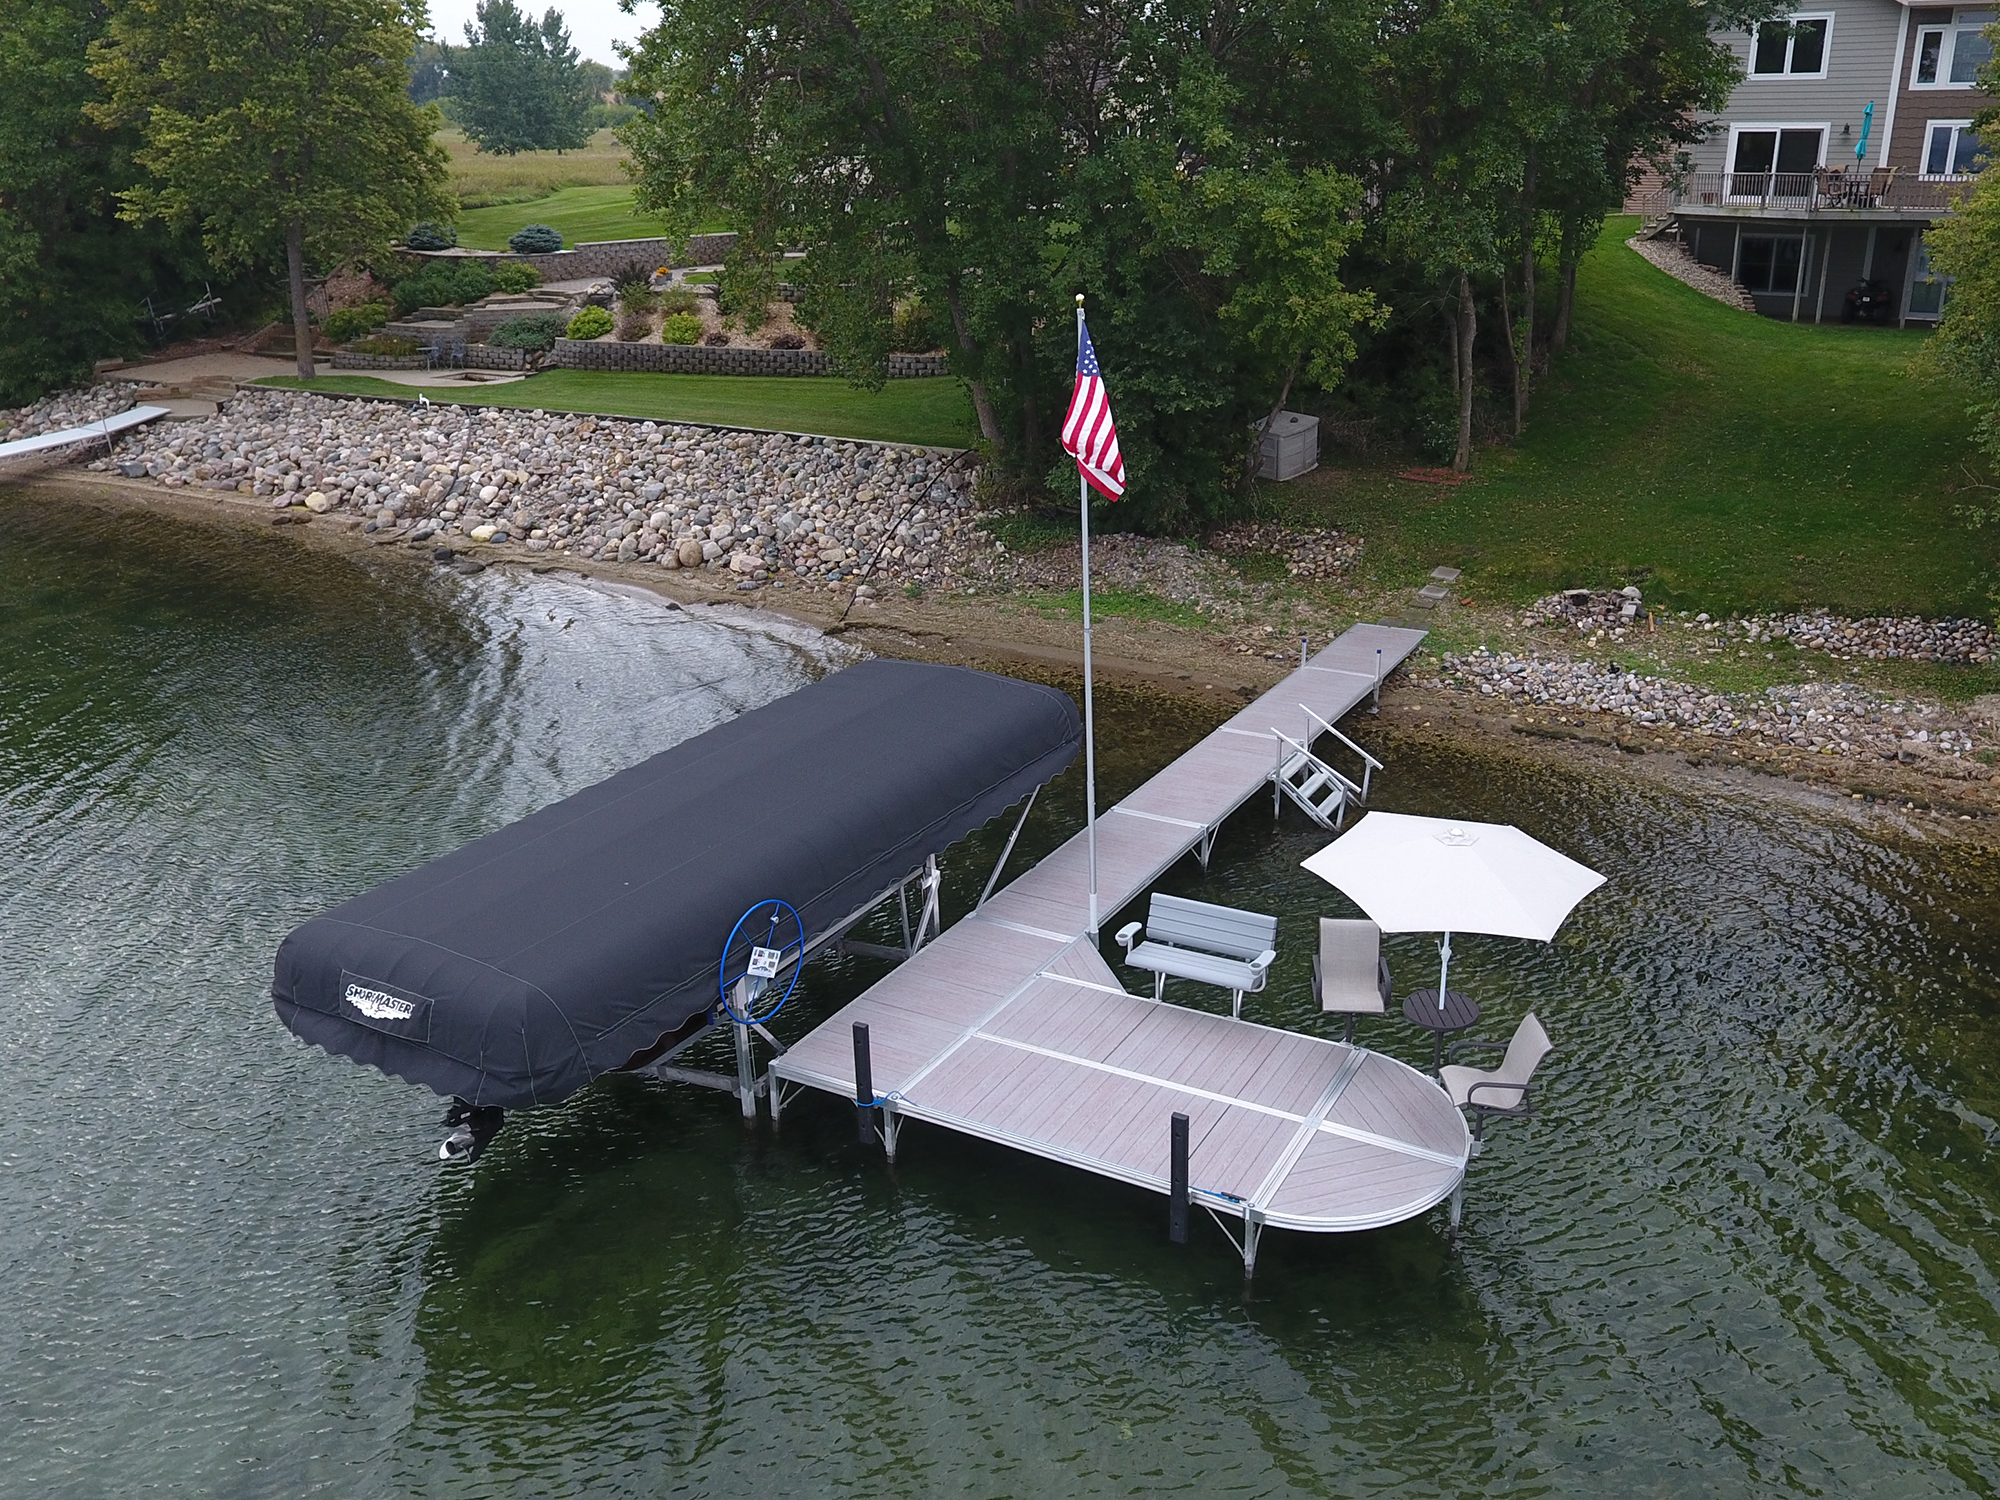 RS4 Gray Woodgrain with Pontoon Lift with Black Canopy